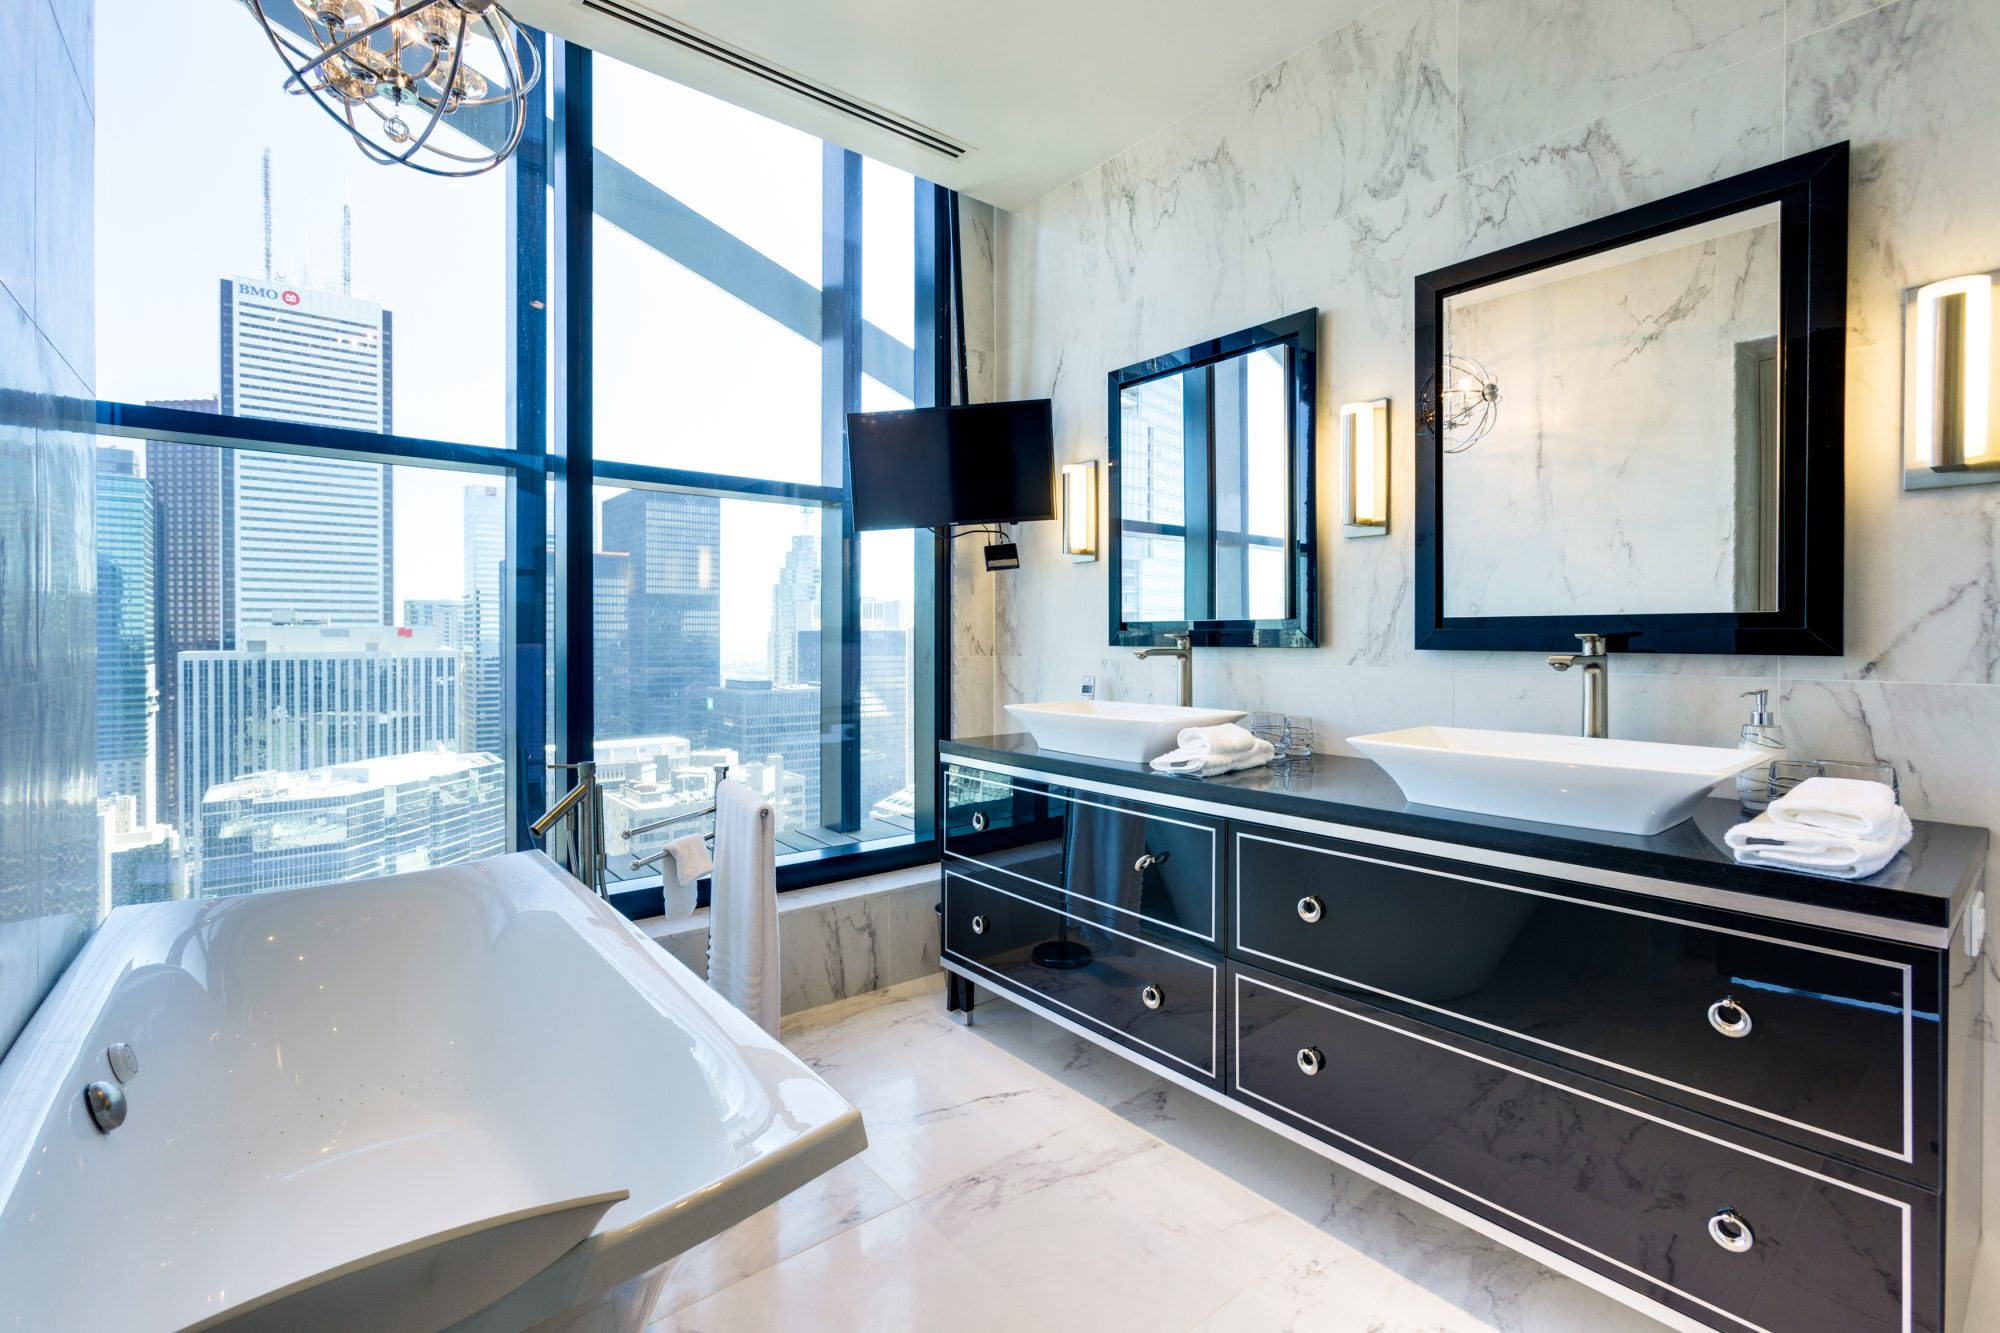 toronto-condo-for-sale-224-king-street-west-11